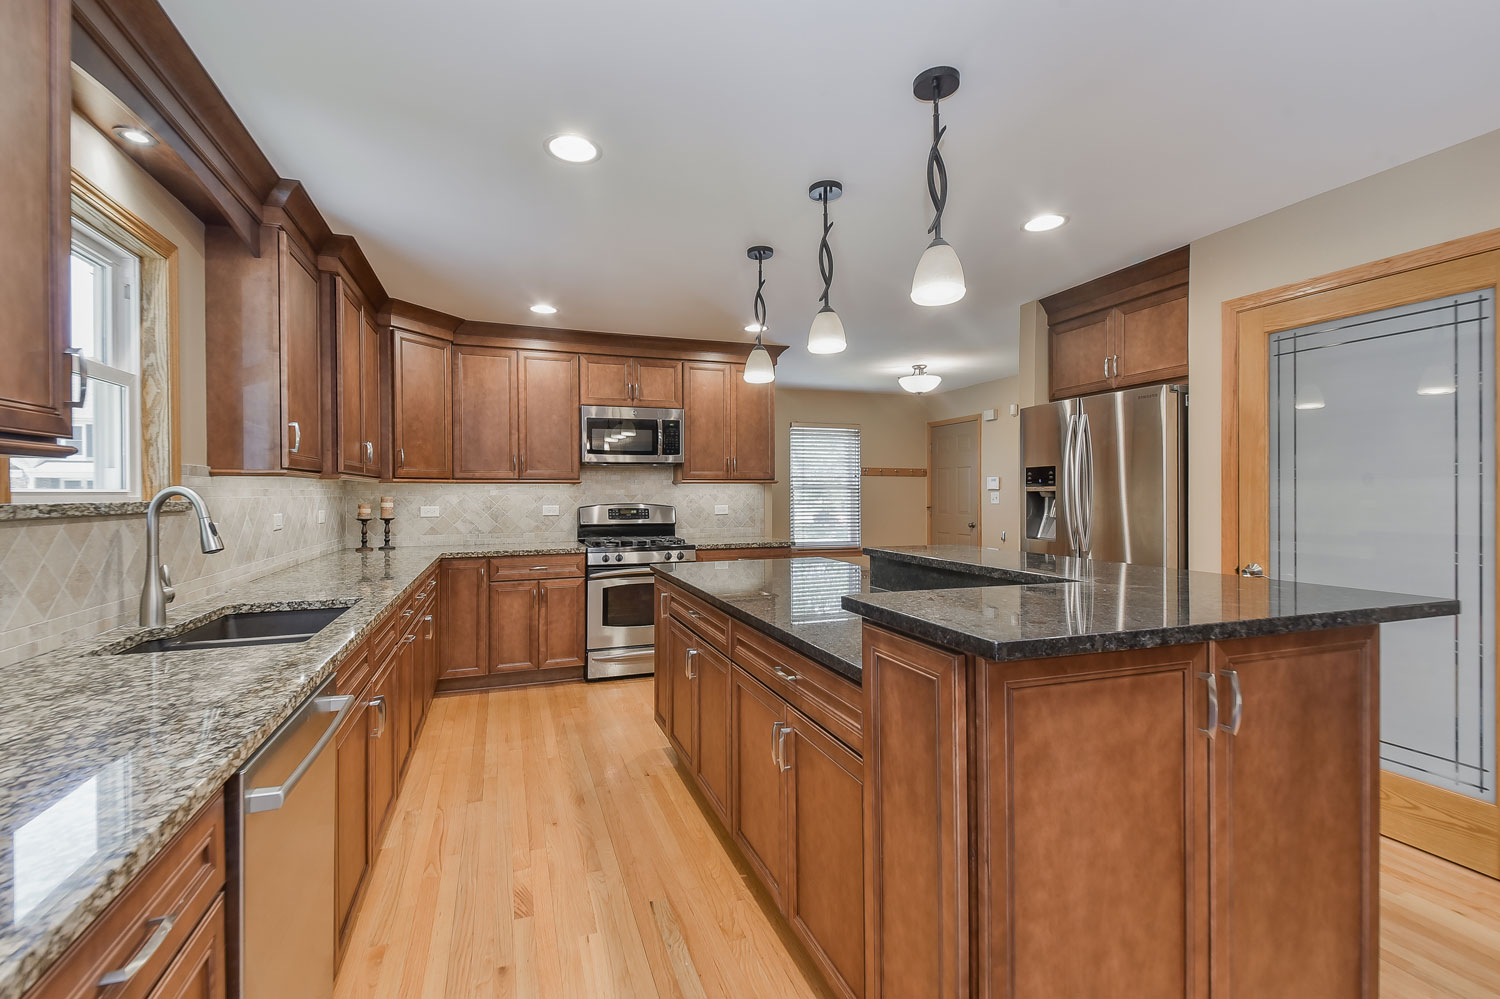 Plainfield Kitchen Remodeling Project - Sebring Services